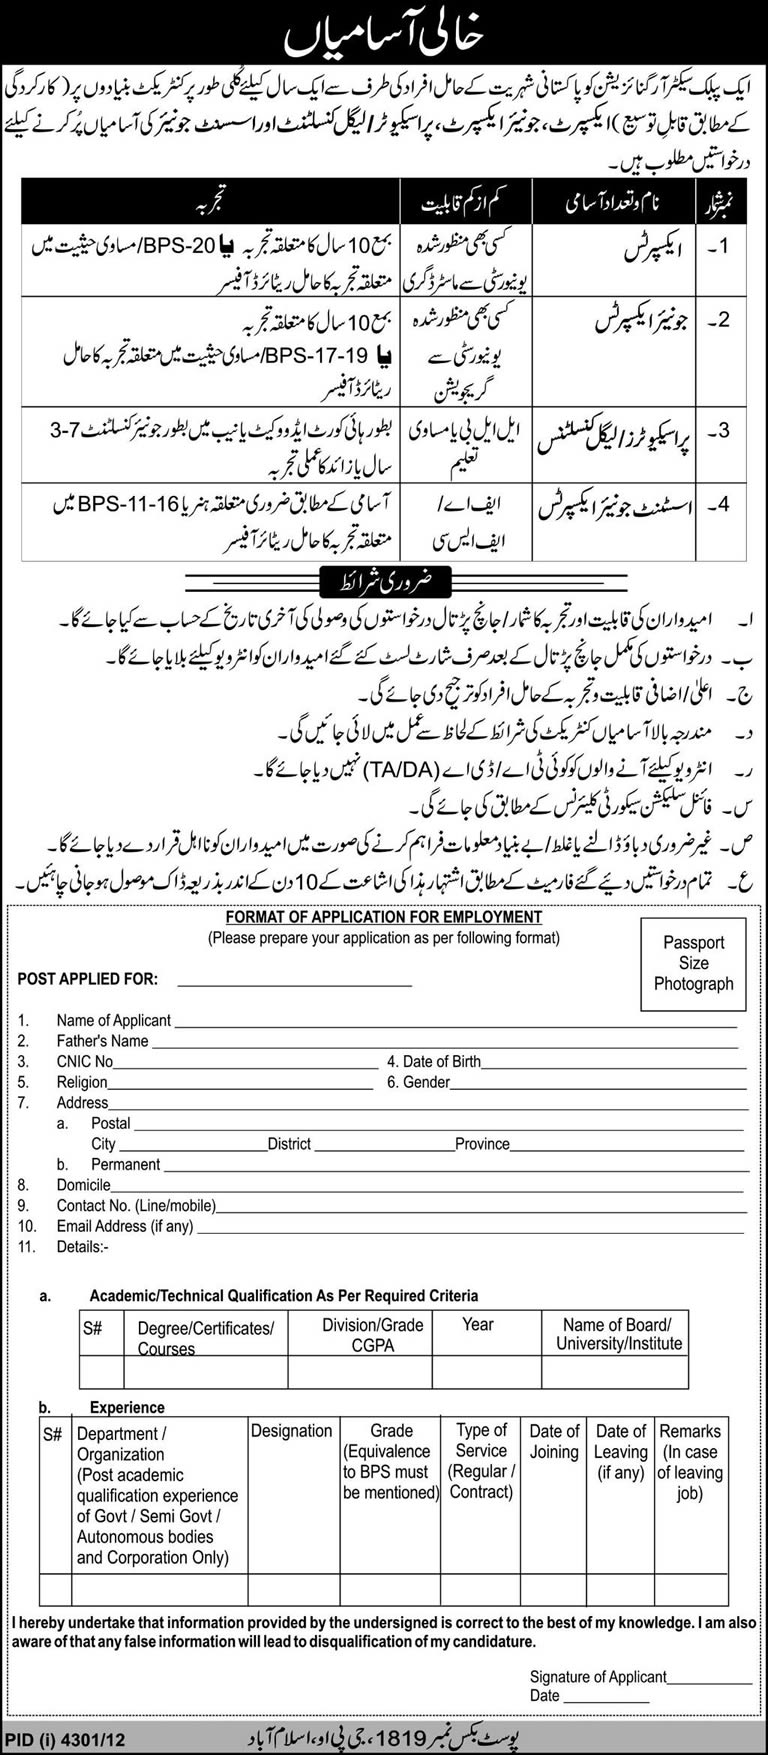 PO Box 1819 GPO Islamabad Jobs 2013 Experts & Prosecutors  / Legal Consultants